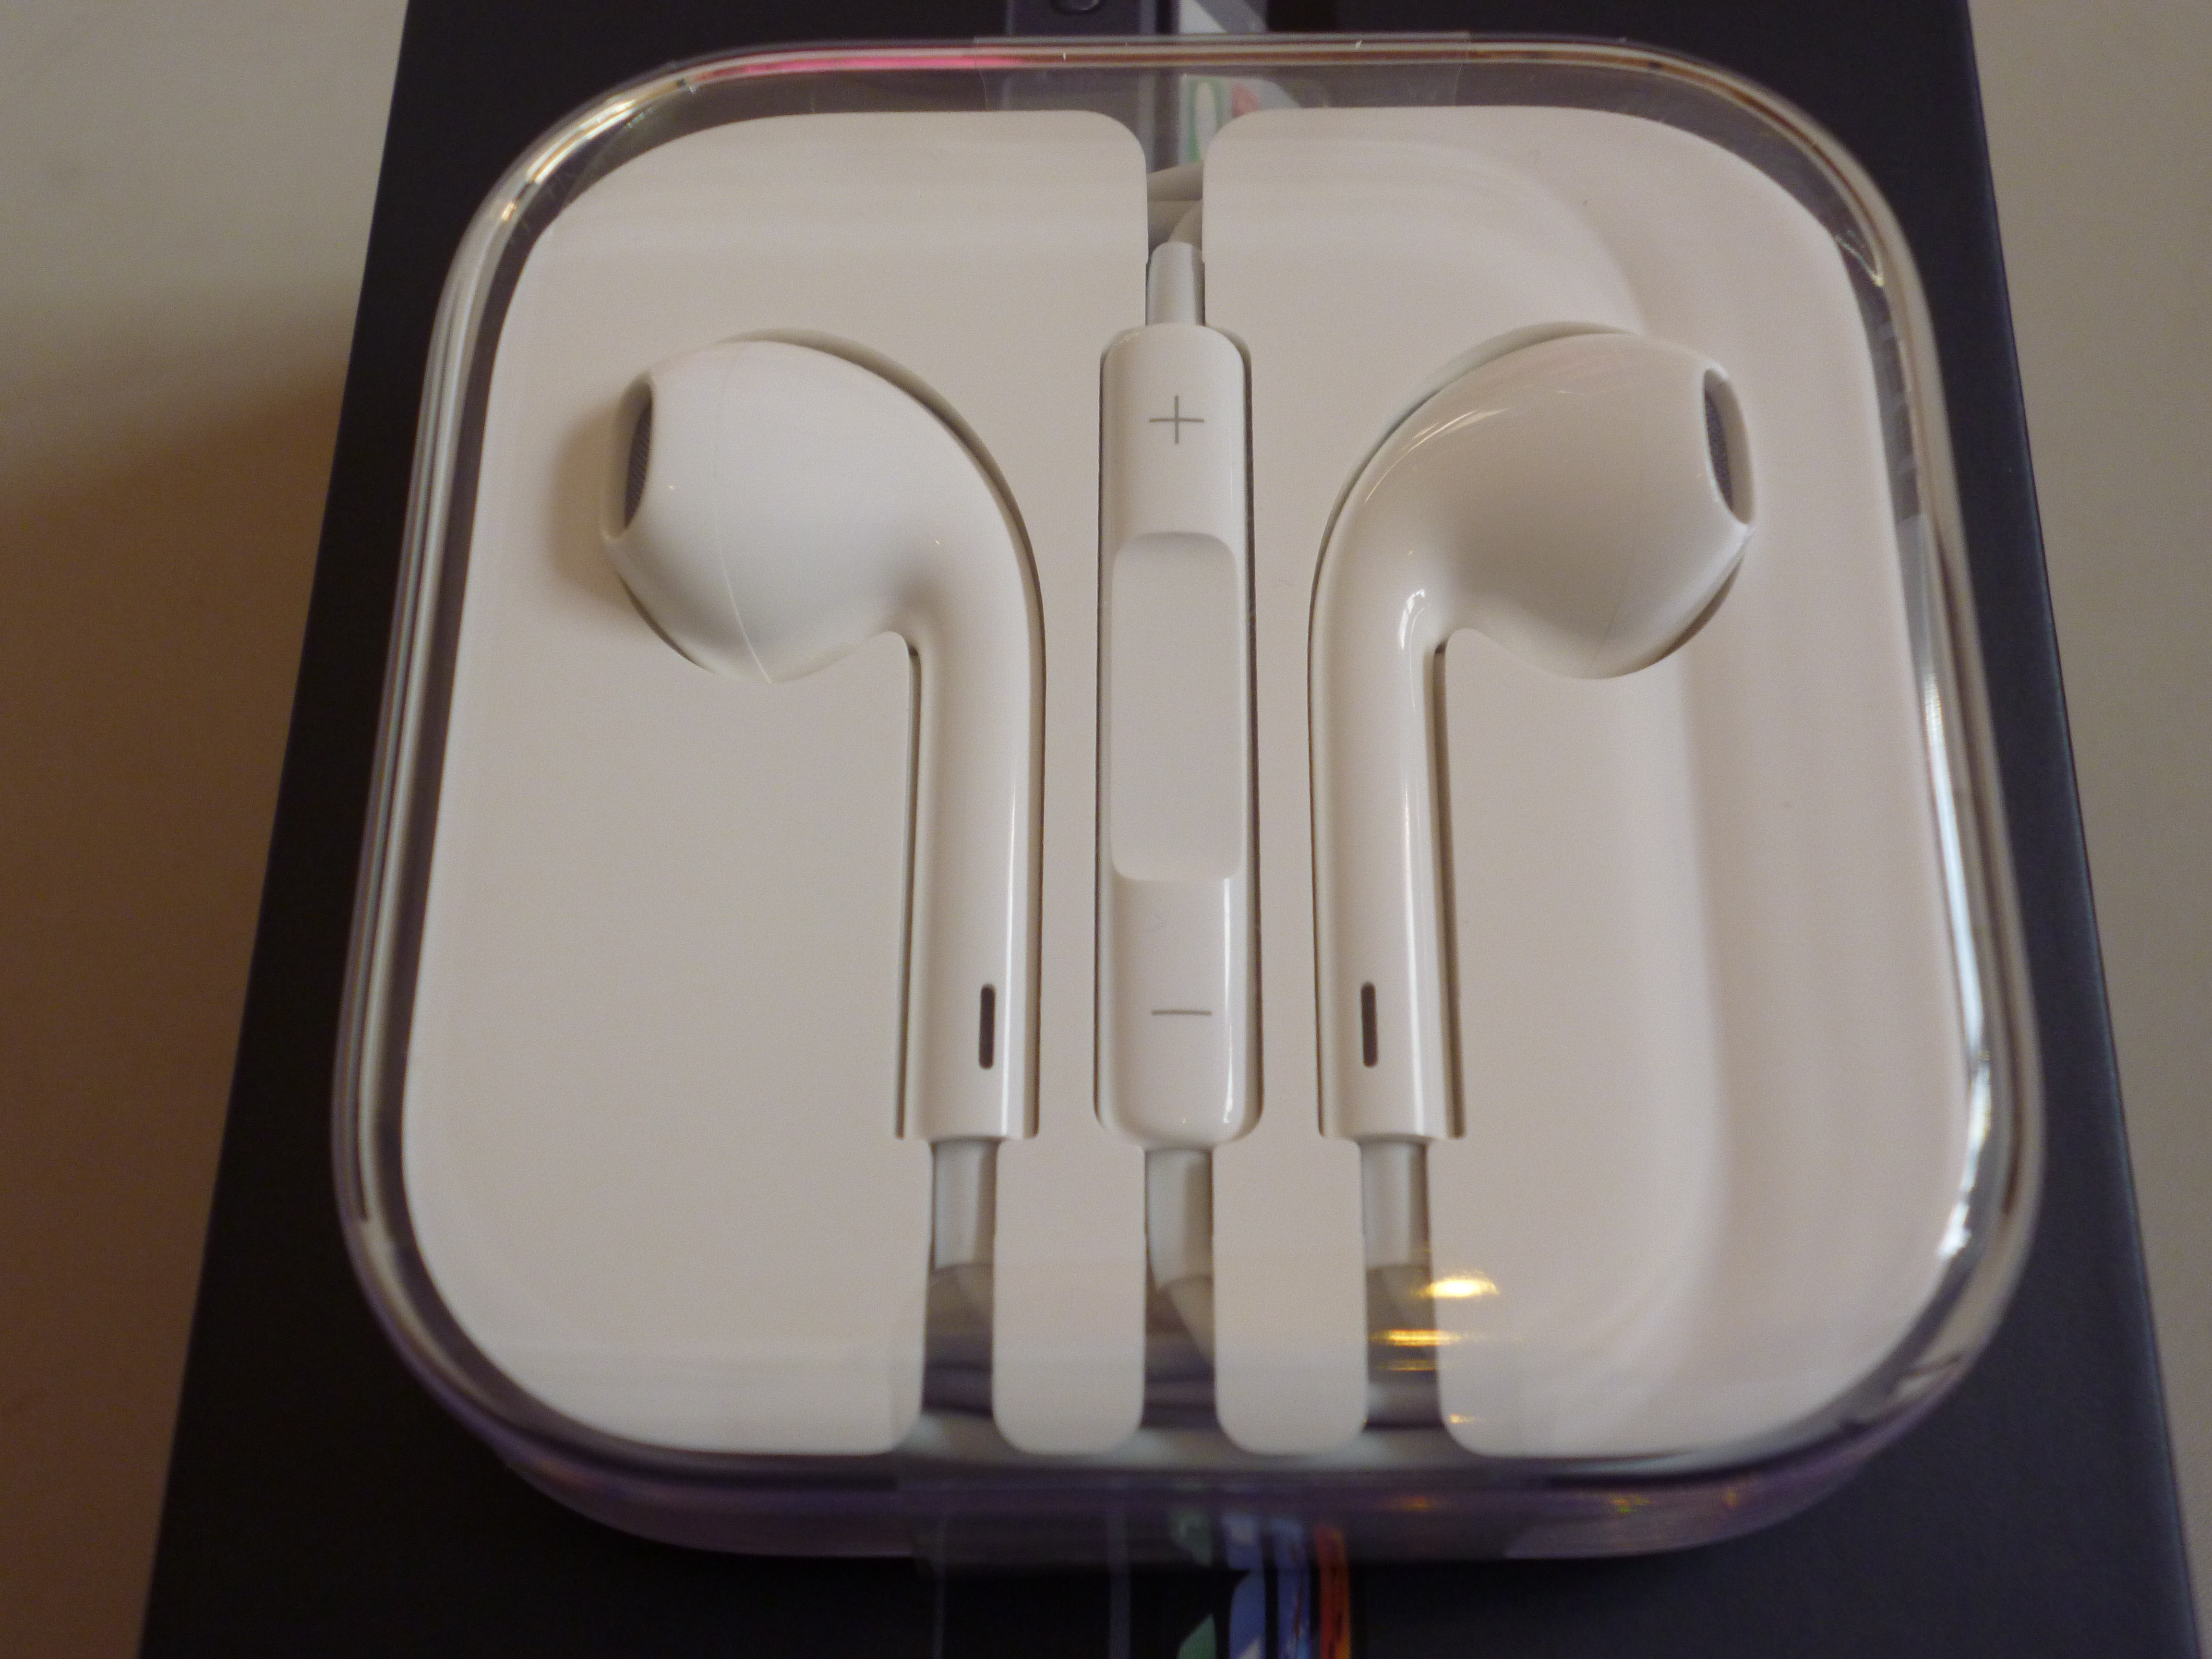 Apple Iphone 5 It S Here Oh Yes Unboxing Photos